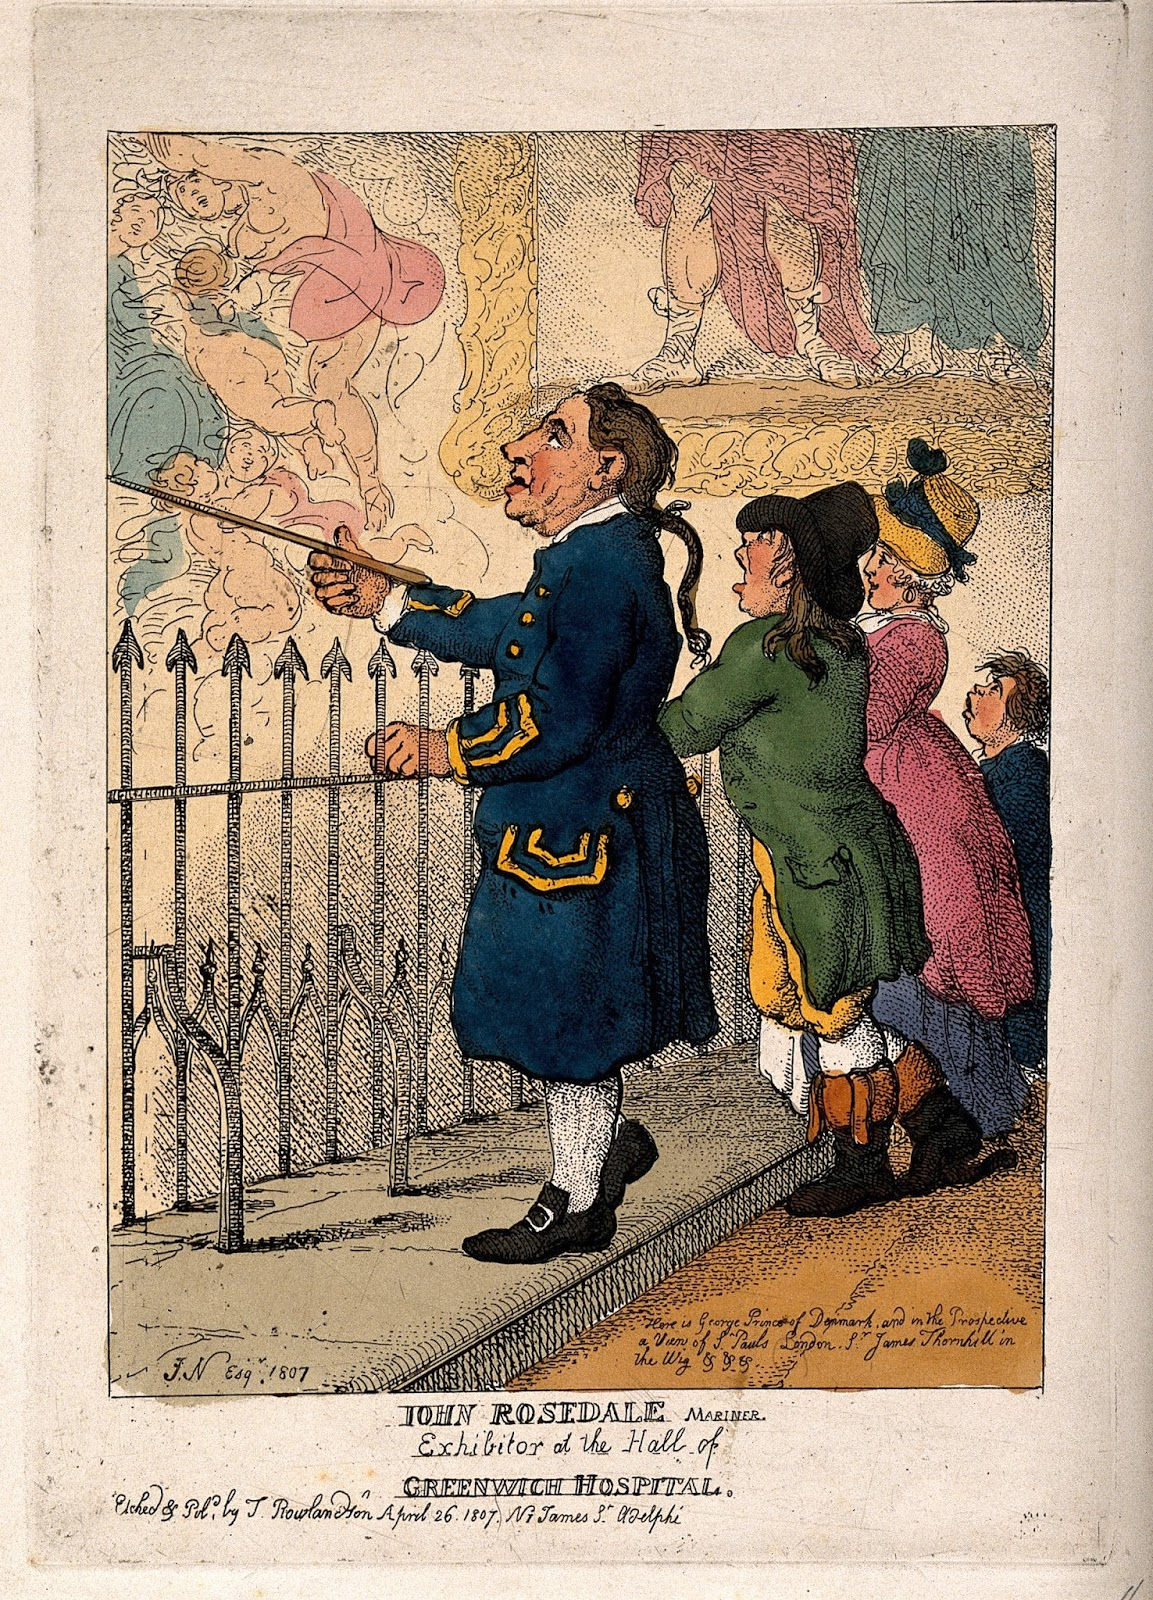 A Greenwich Pensioner showing the Thornhill decorations in the Painted Hall to a family of visitors. Coloured etching by T. Rowlandson after [J. N.] Esq, 1807. Courtesy of the Wellcome Institute.